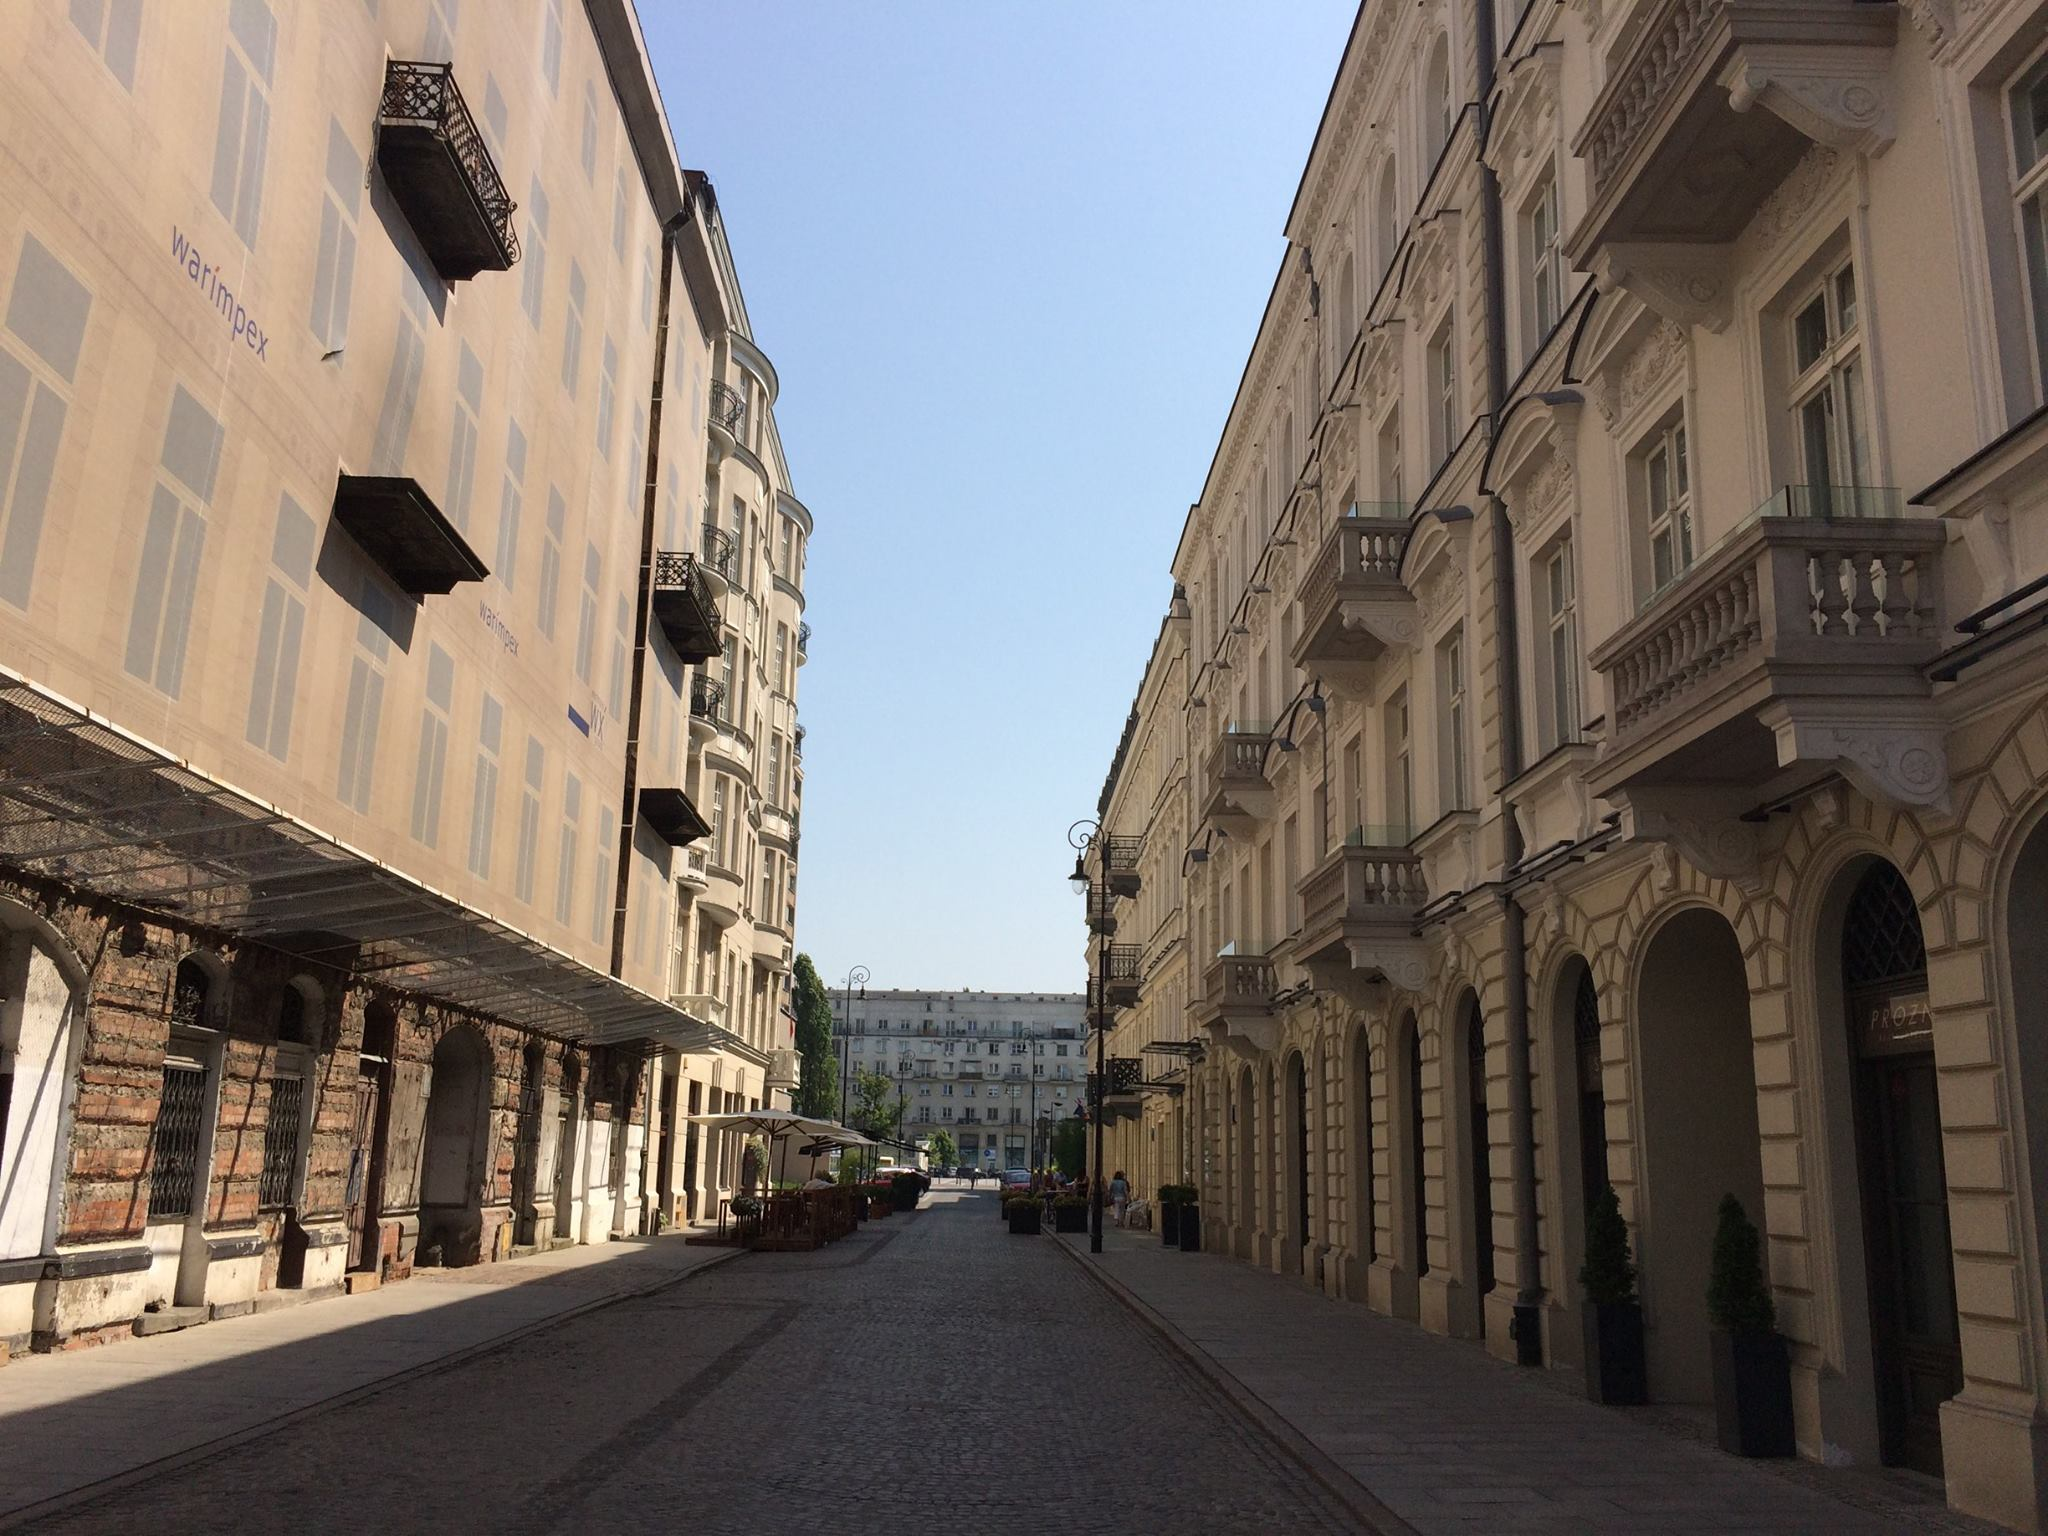 Próźna Street, looking the other direction